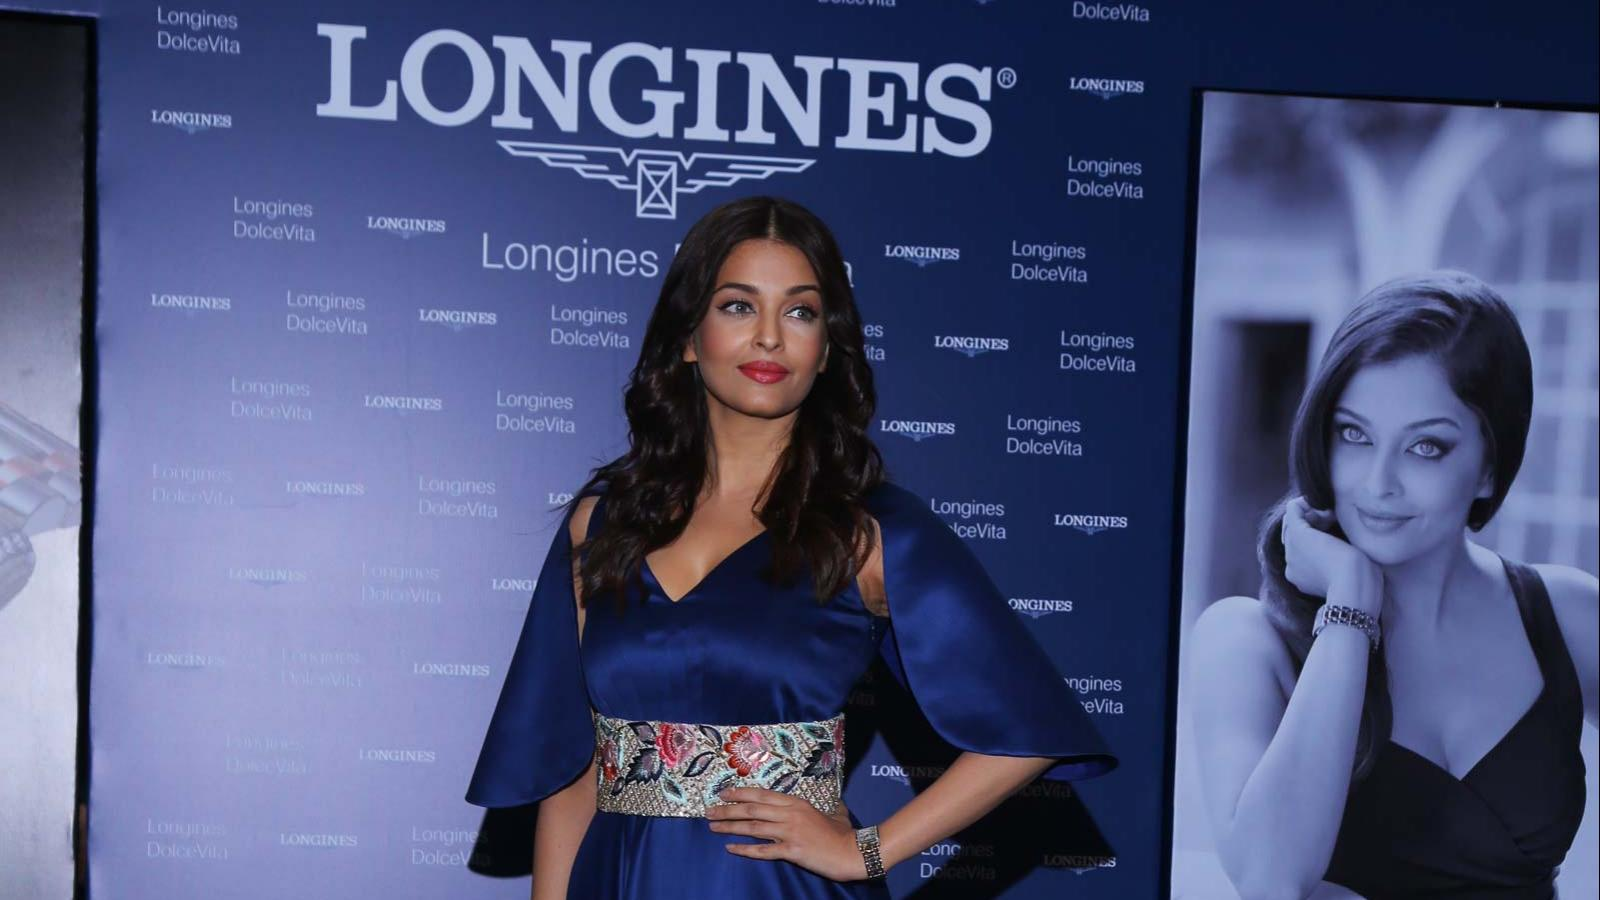 Longines opened a new boutique in India; Longines Dolce Vita steel and gold; Aishwarya Rai Bachchan; November; 2016